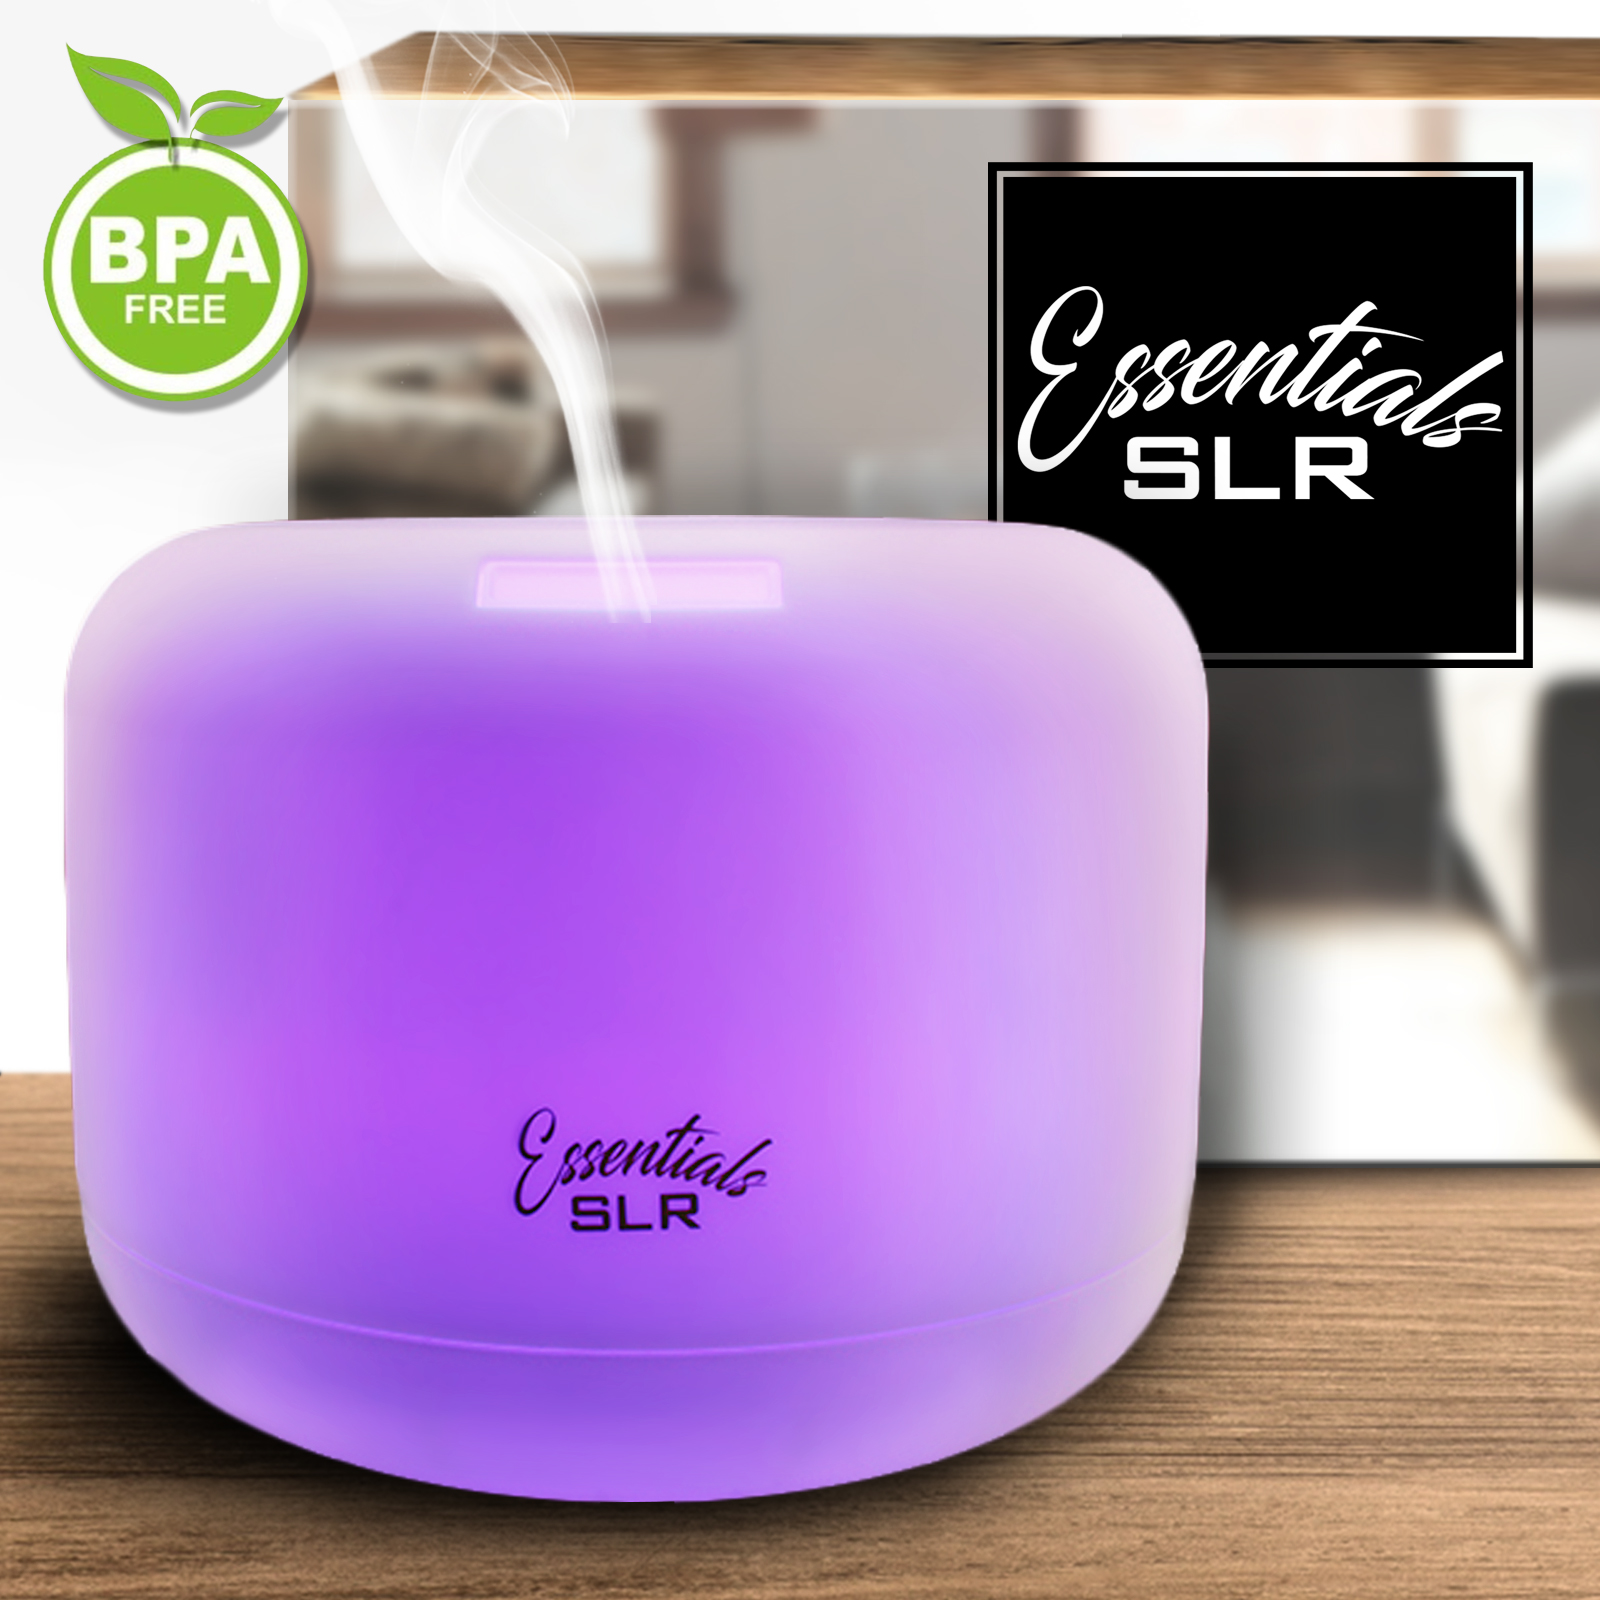 SLR 500ml Aromatherapy Essential Oil Large Diffuser BPA Free Ultrasonic Air Humidifier with Multi-Color Changing LED, Auto Shut-Off